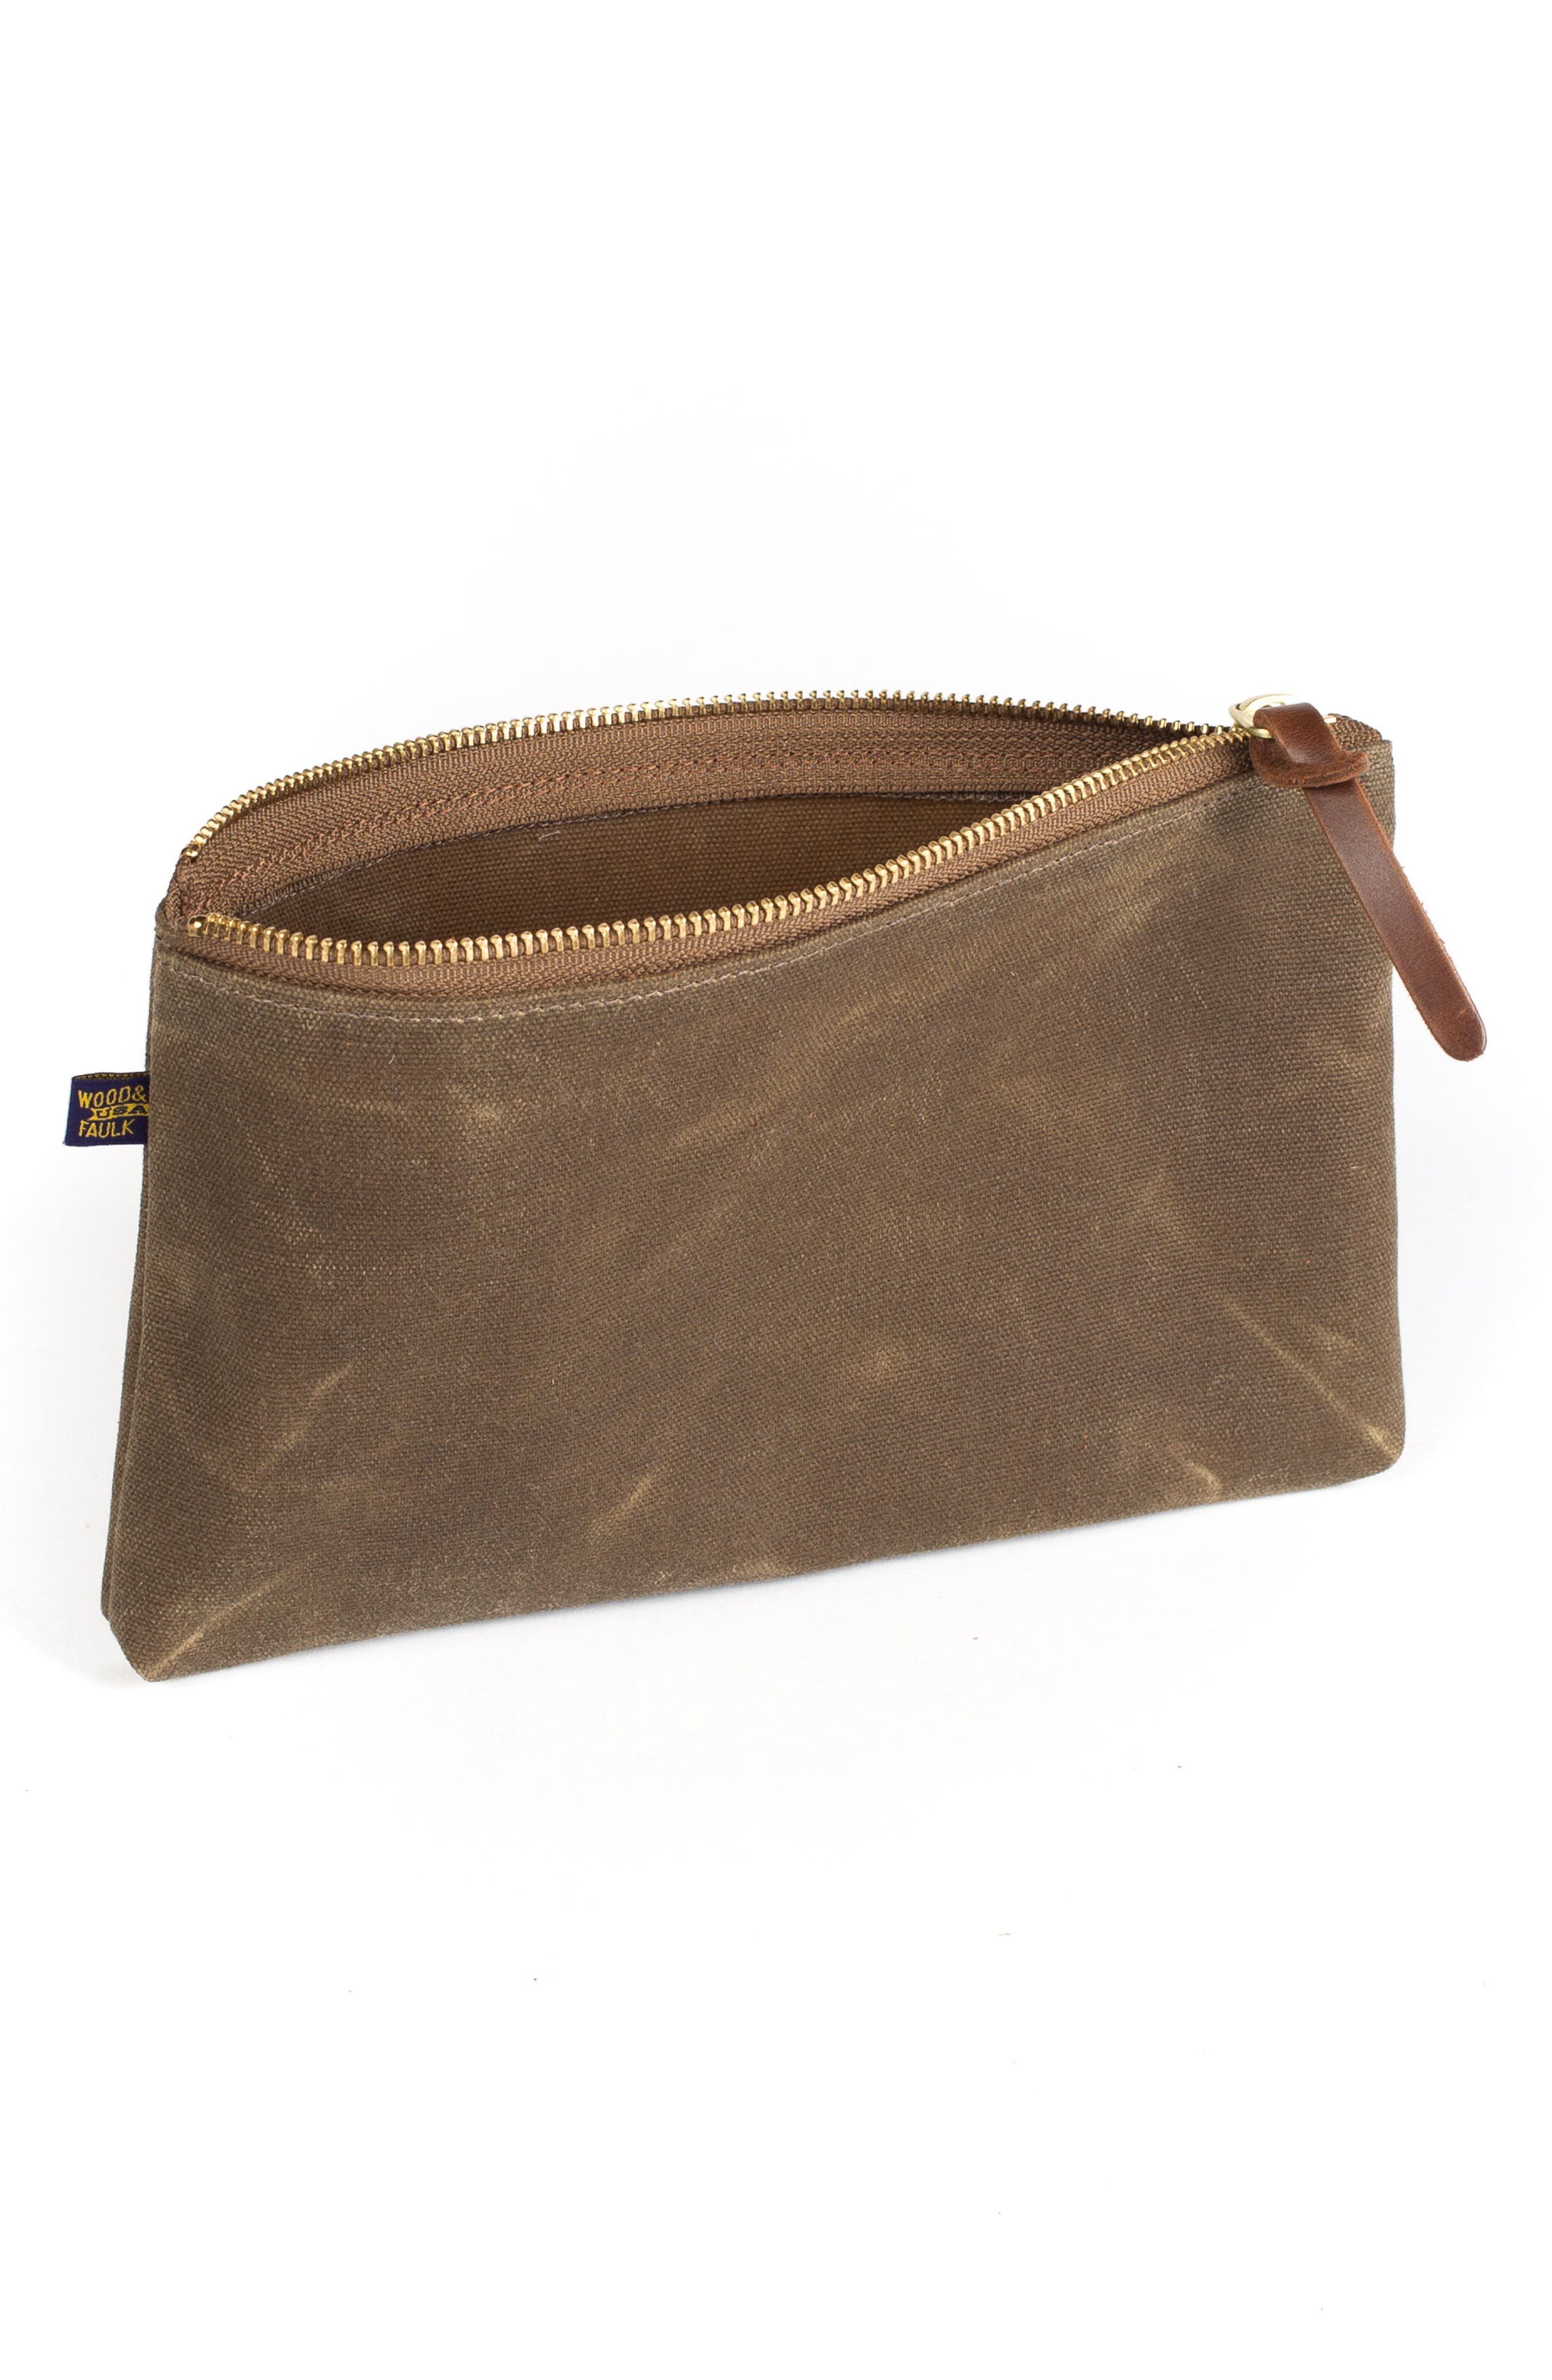 Waxed Canvas Zip Pouch,                             Alternate thumbnail 4, color,